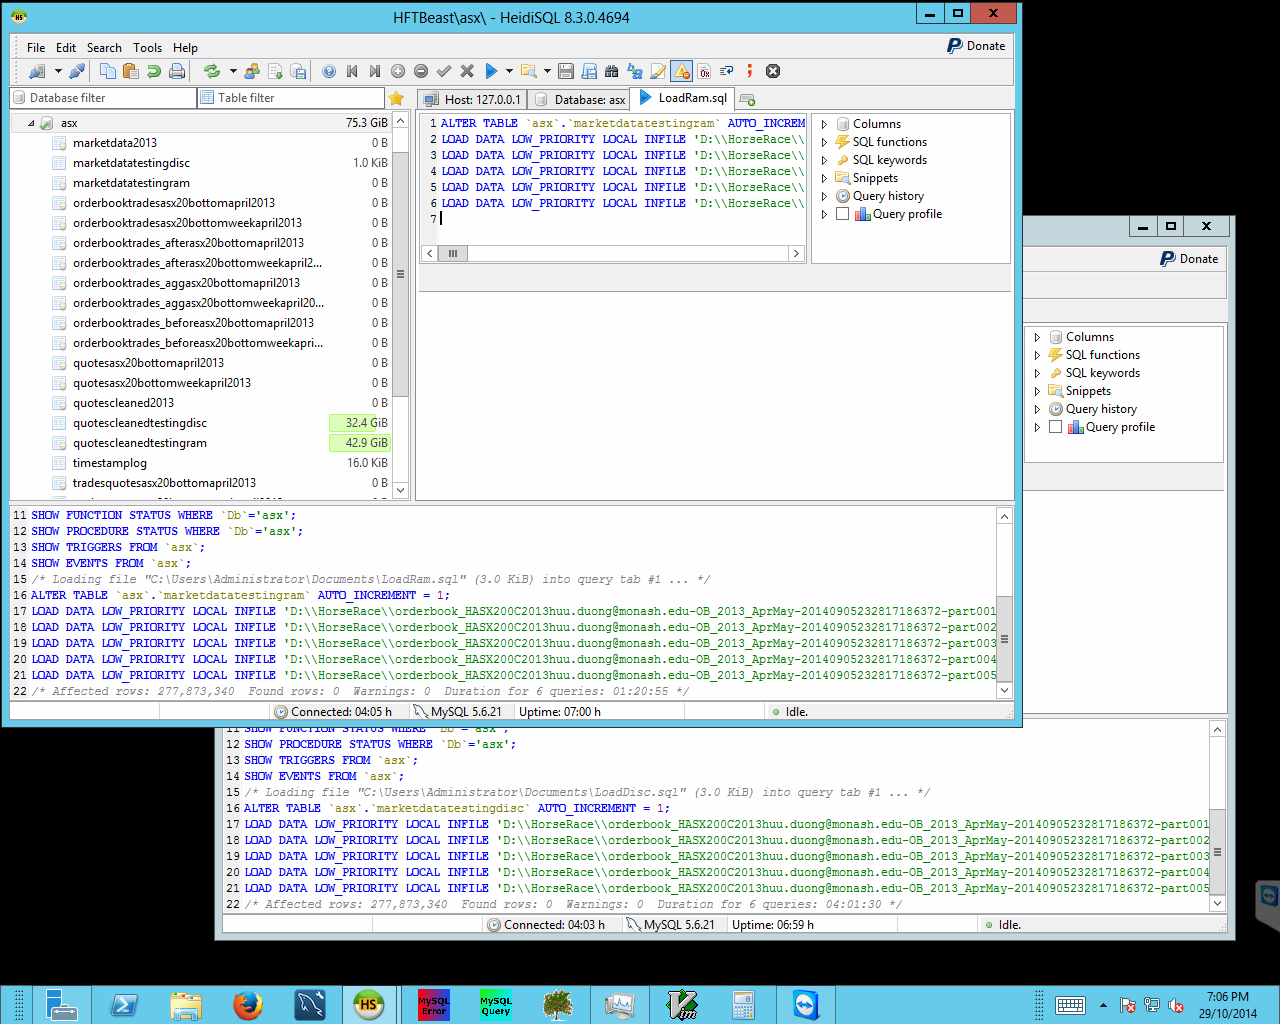 Ingestion of pre-processed data into the database running on the high-memory instance, for analysis.